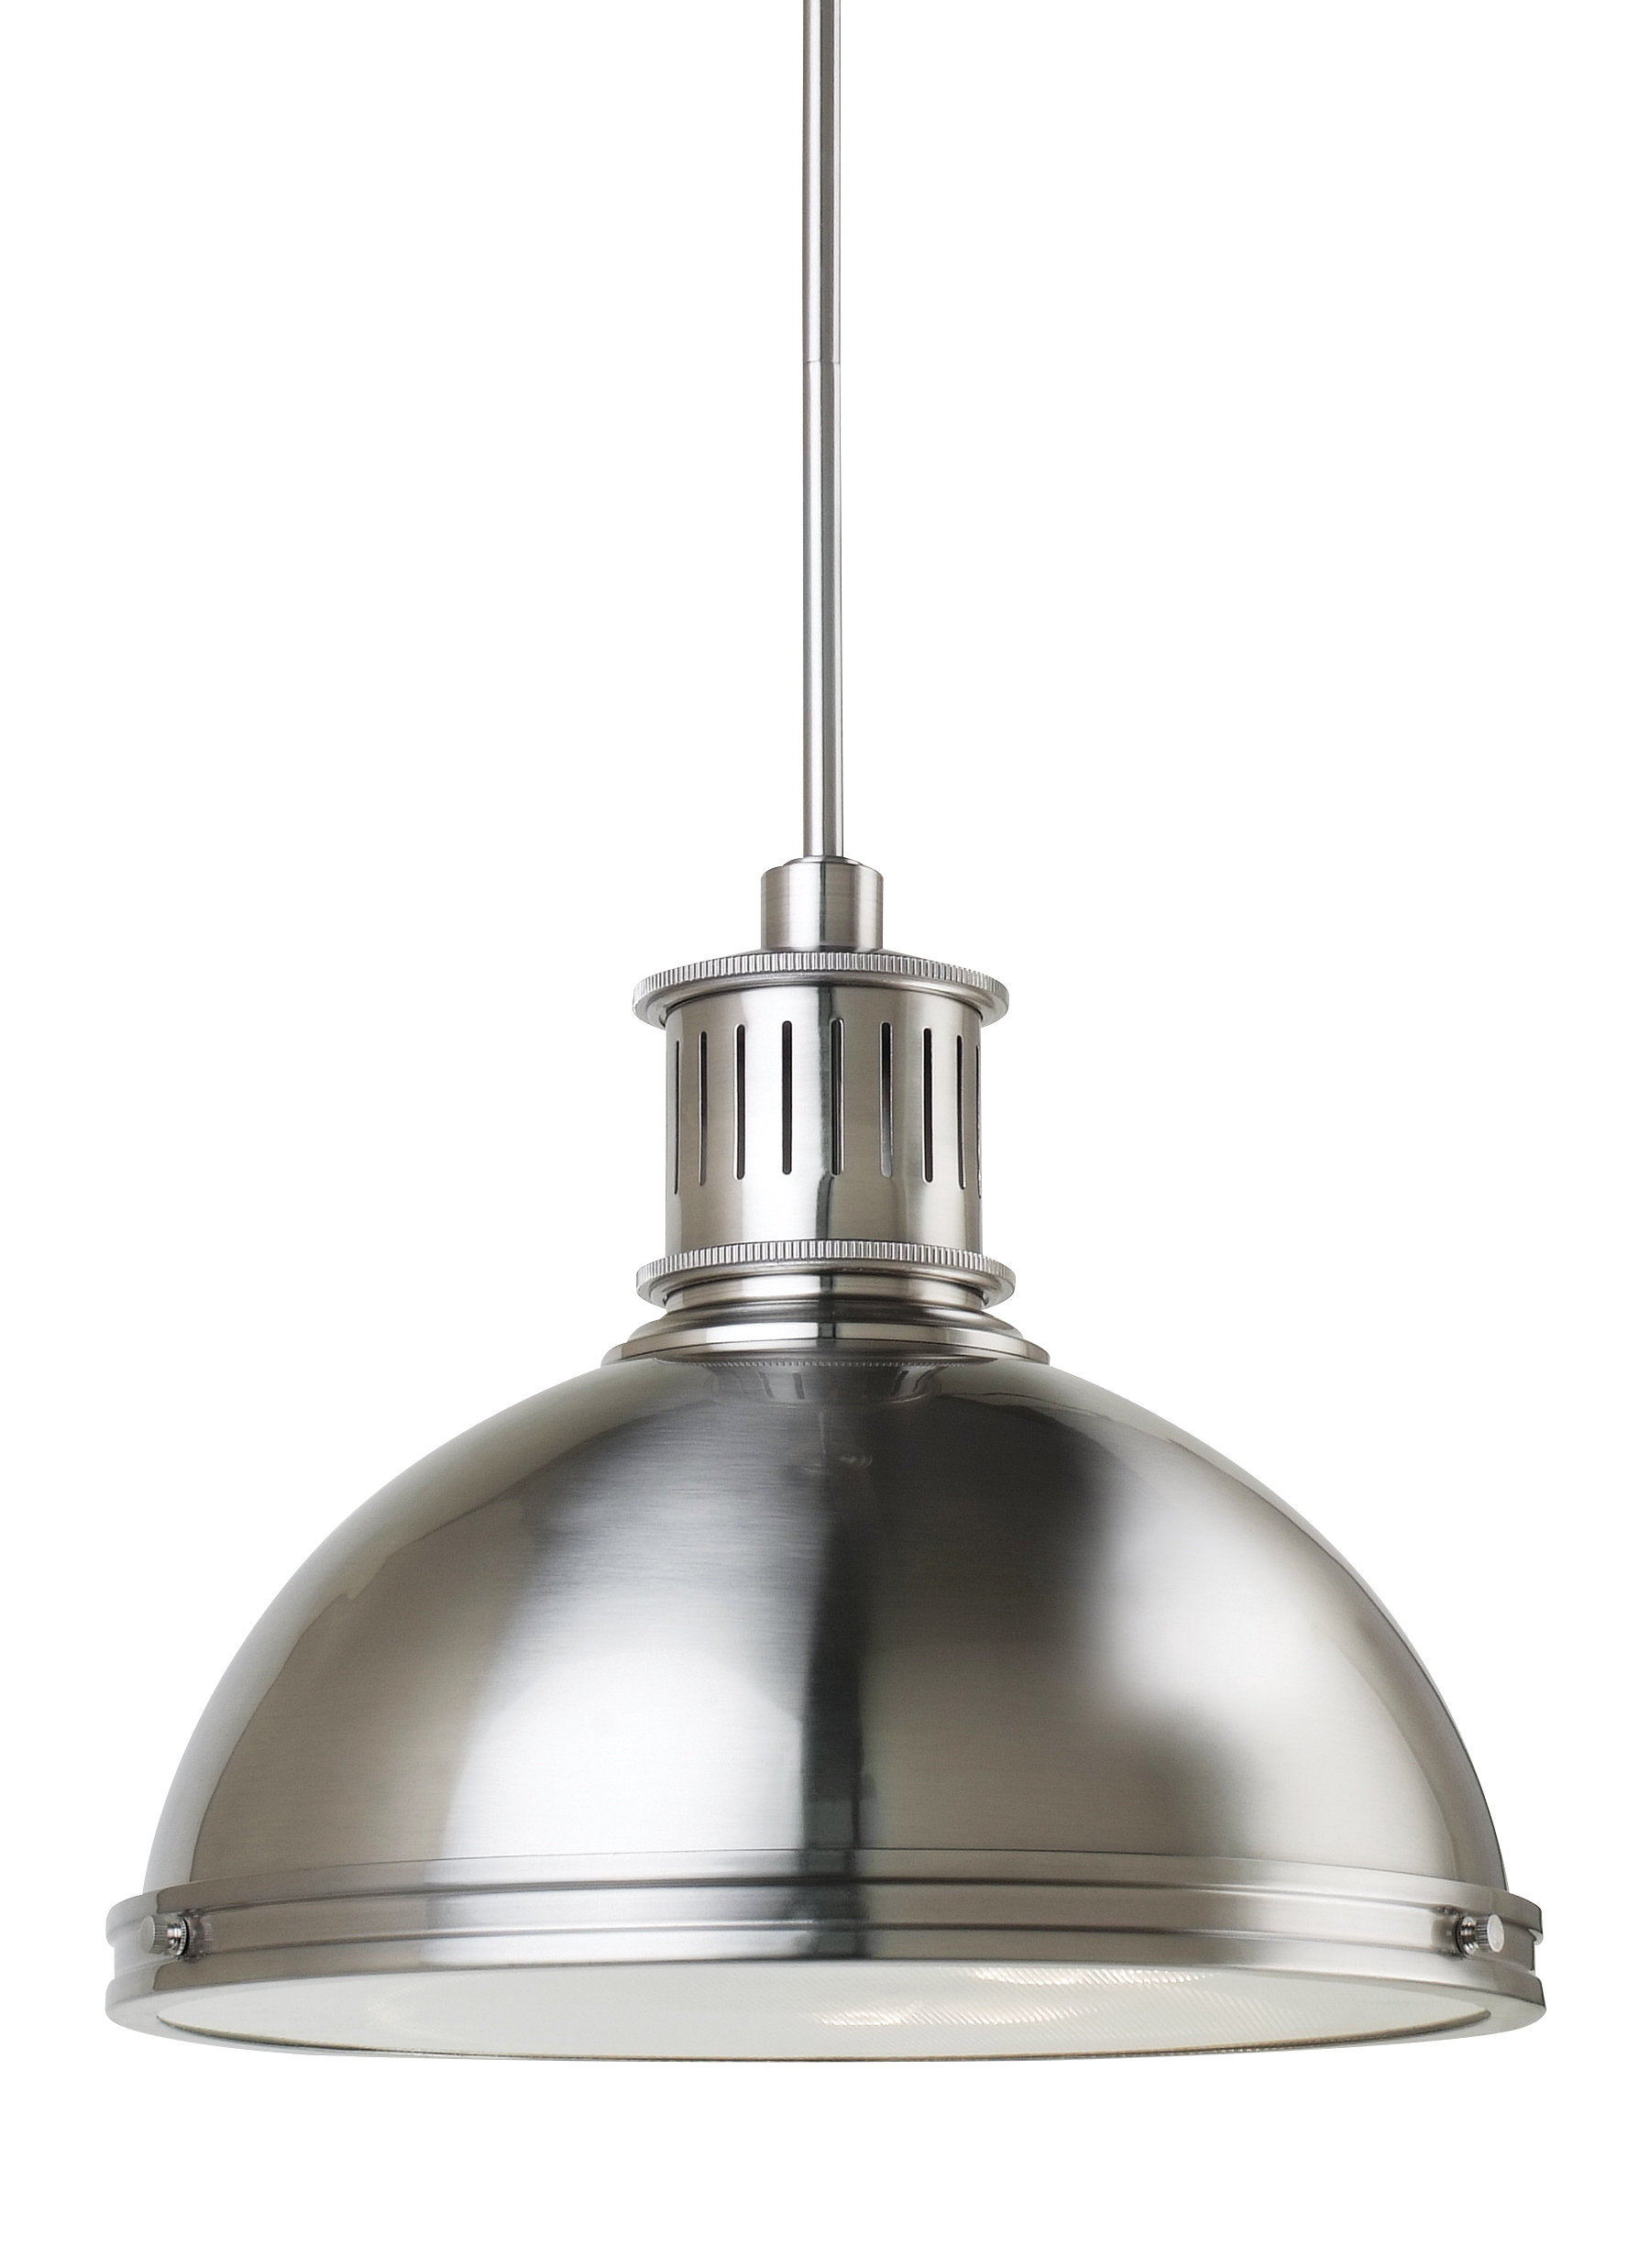 Amara 3 Light Dome Pendant With Popular Amara 3 Light Dome Pendants (View 2 of 20)